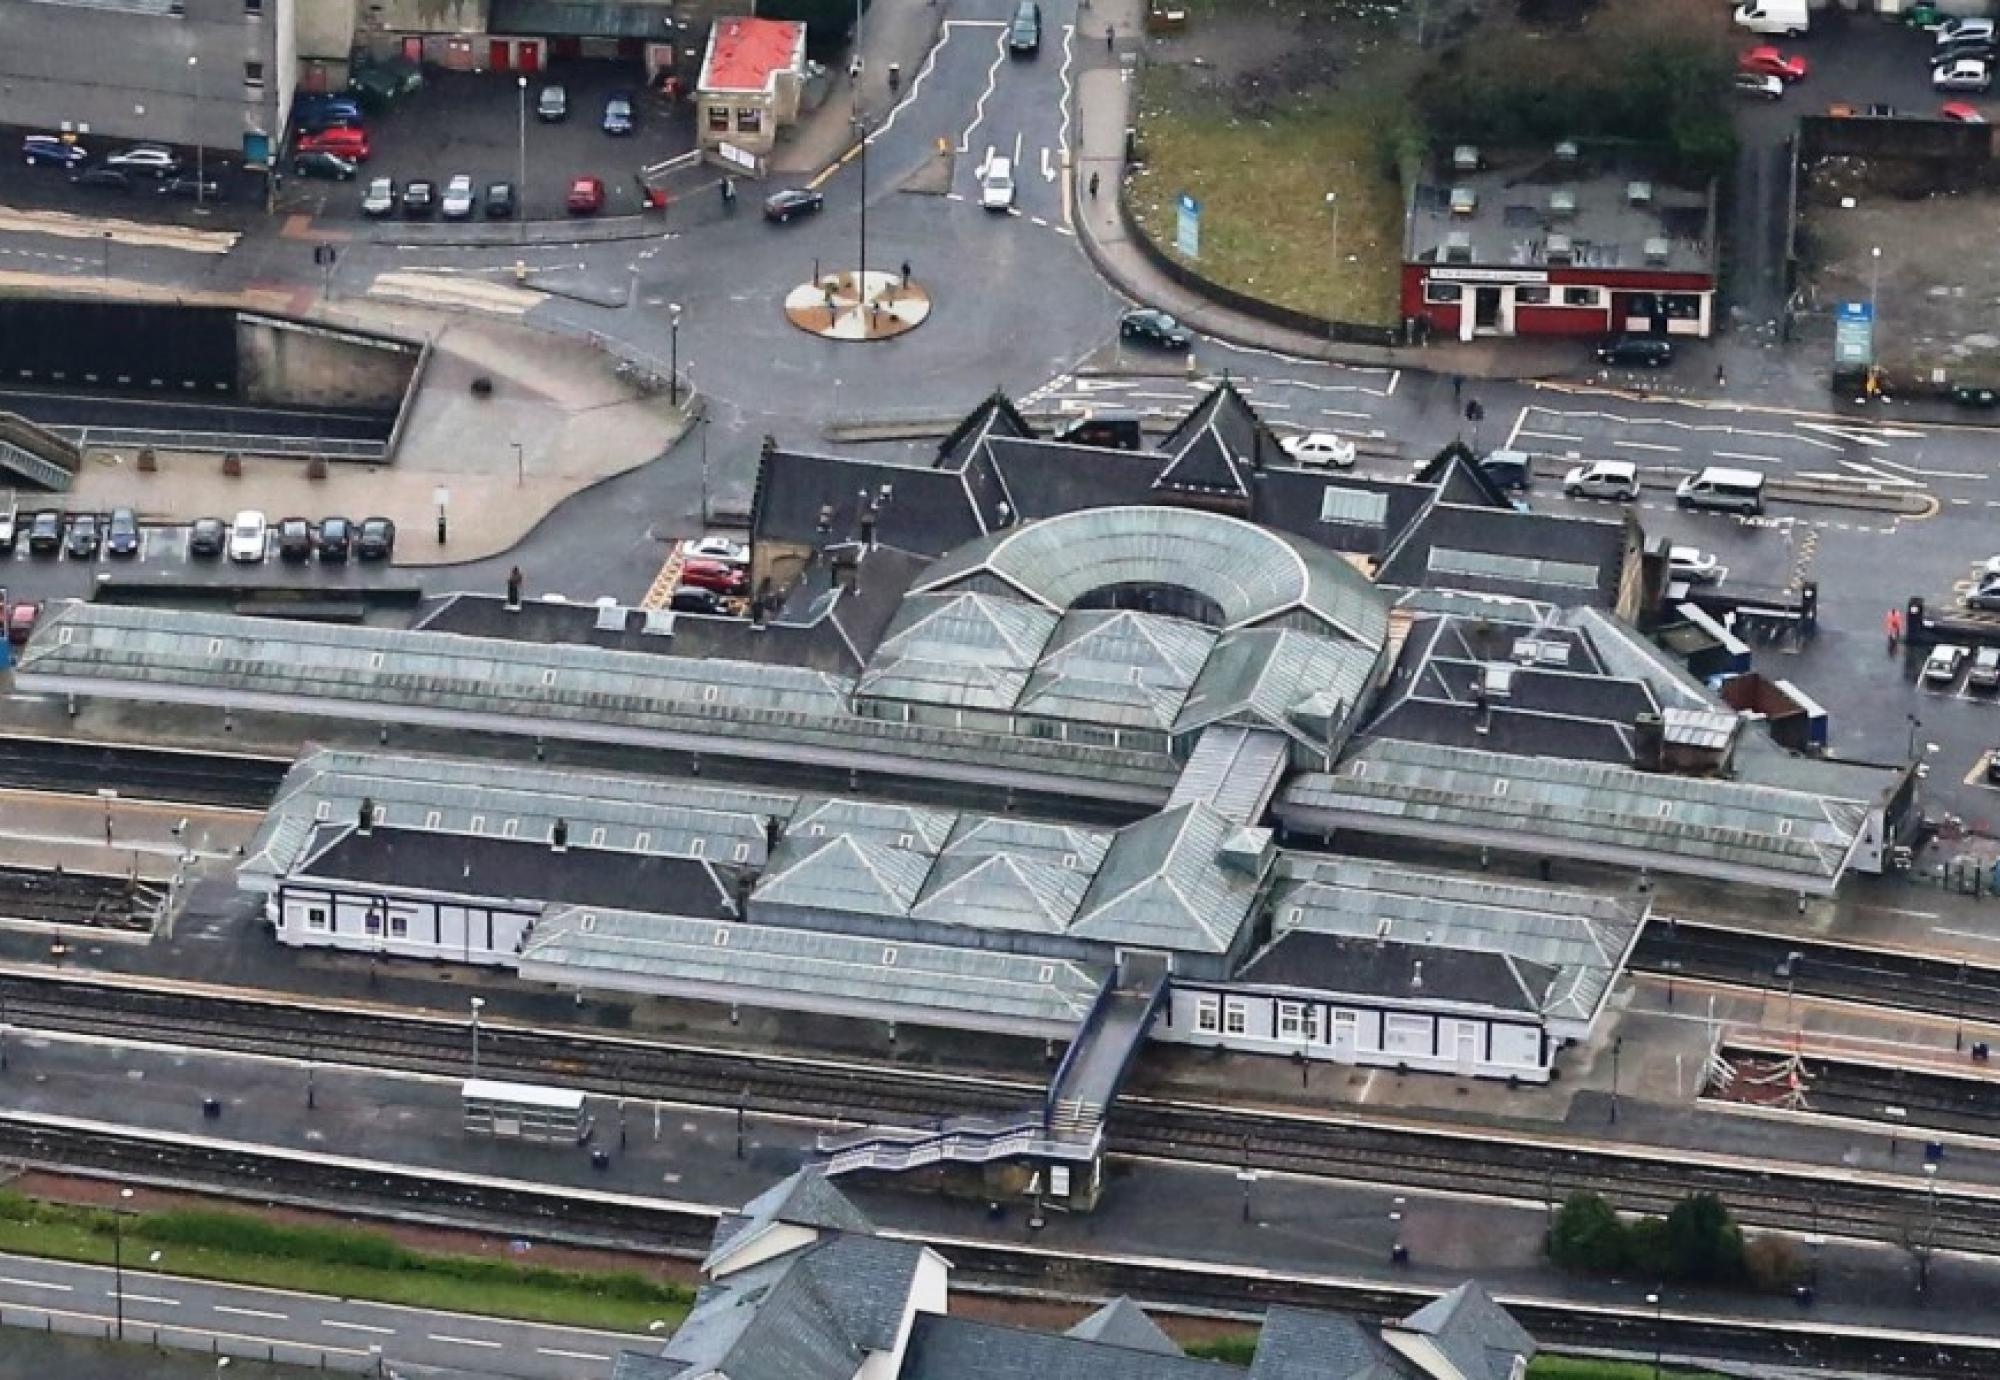 Major £3m refurb of Stirling station roof to begin